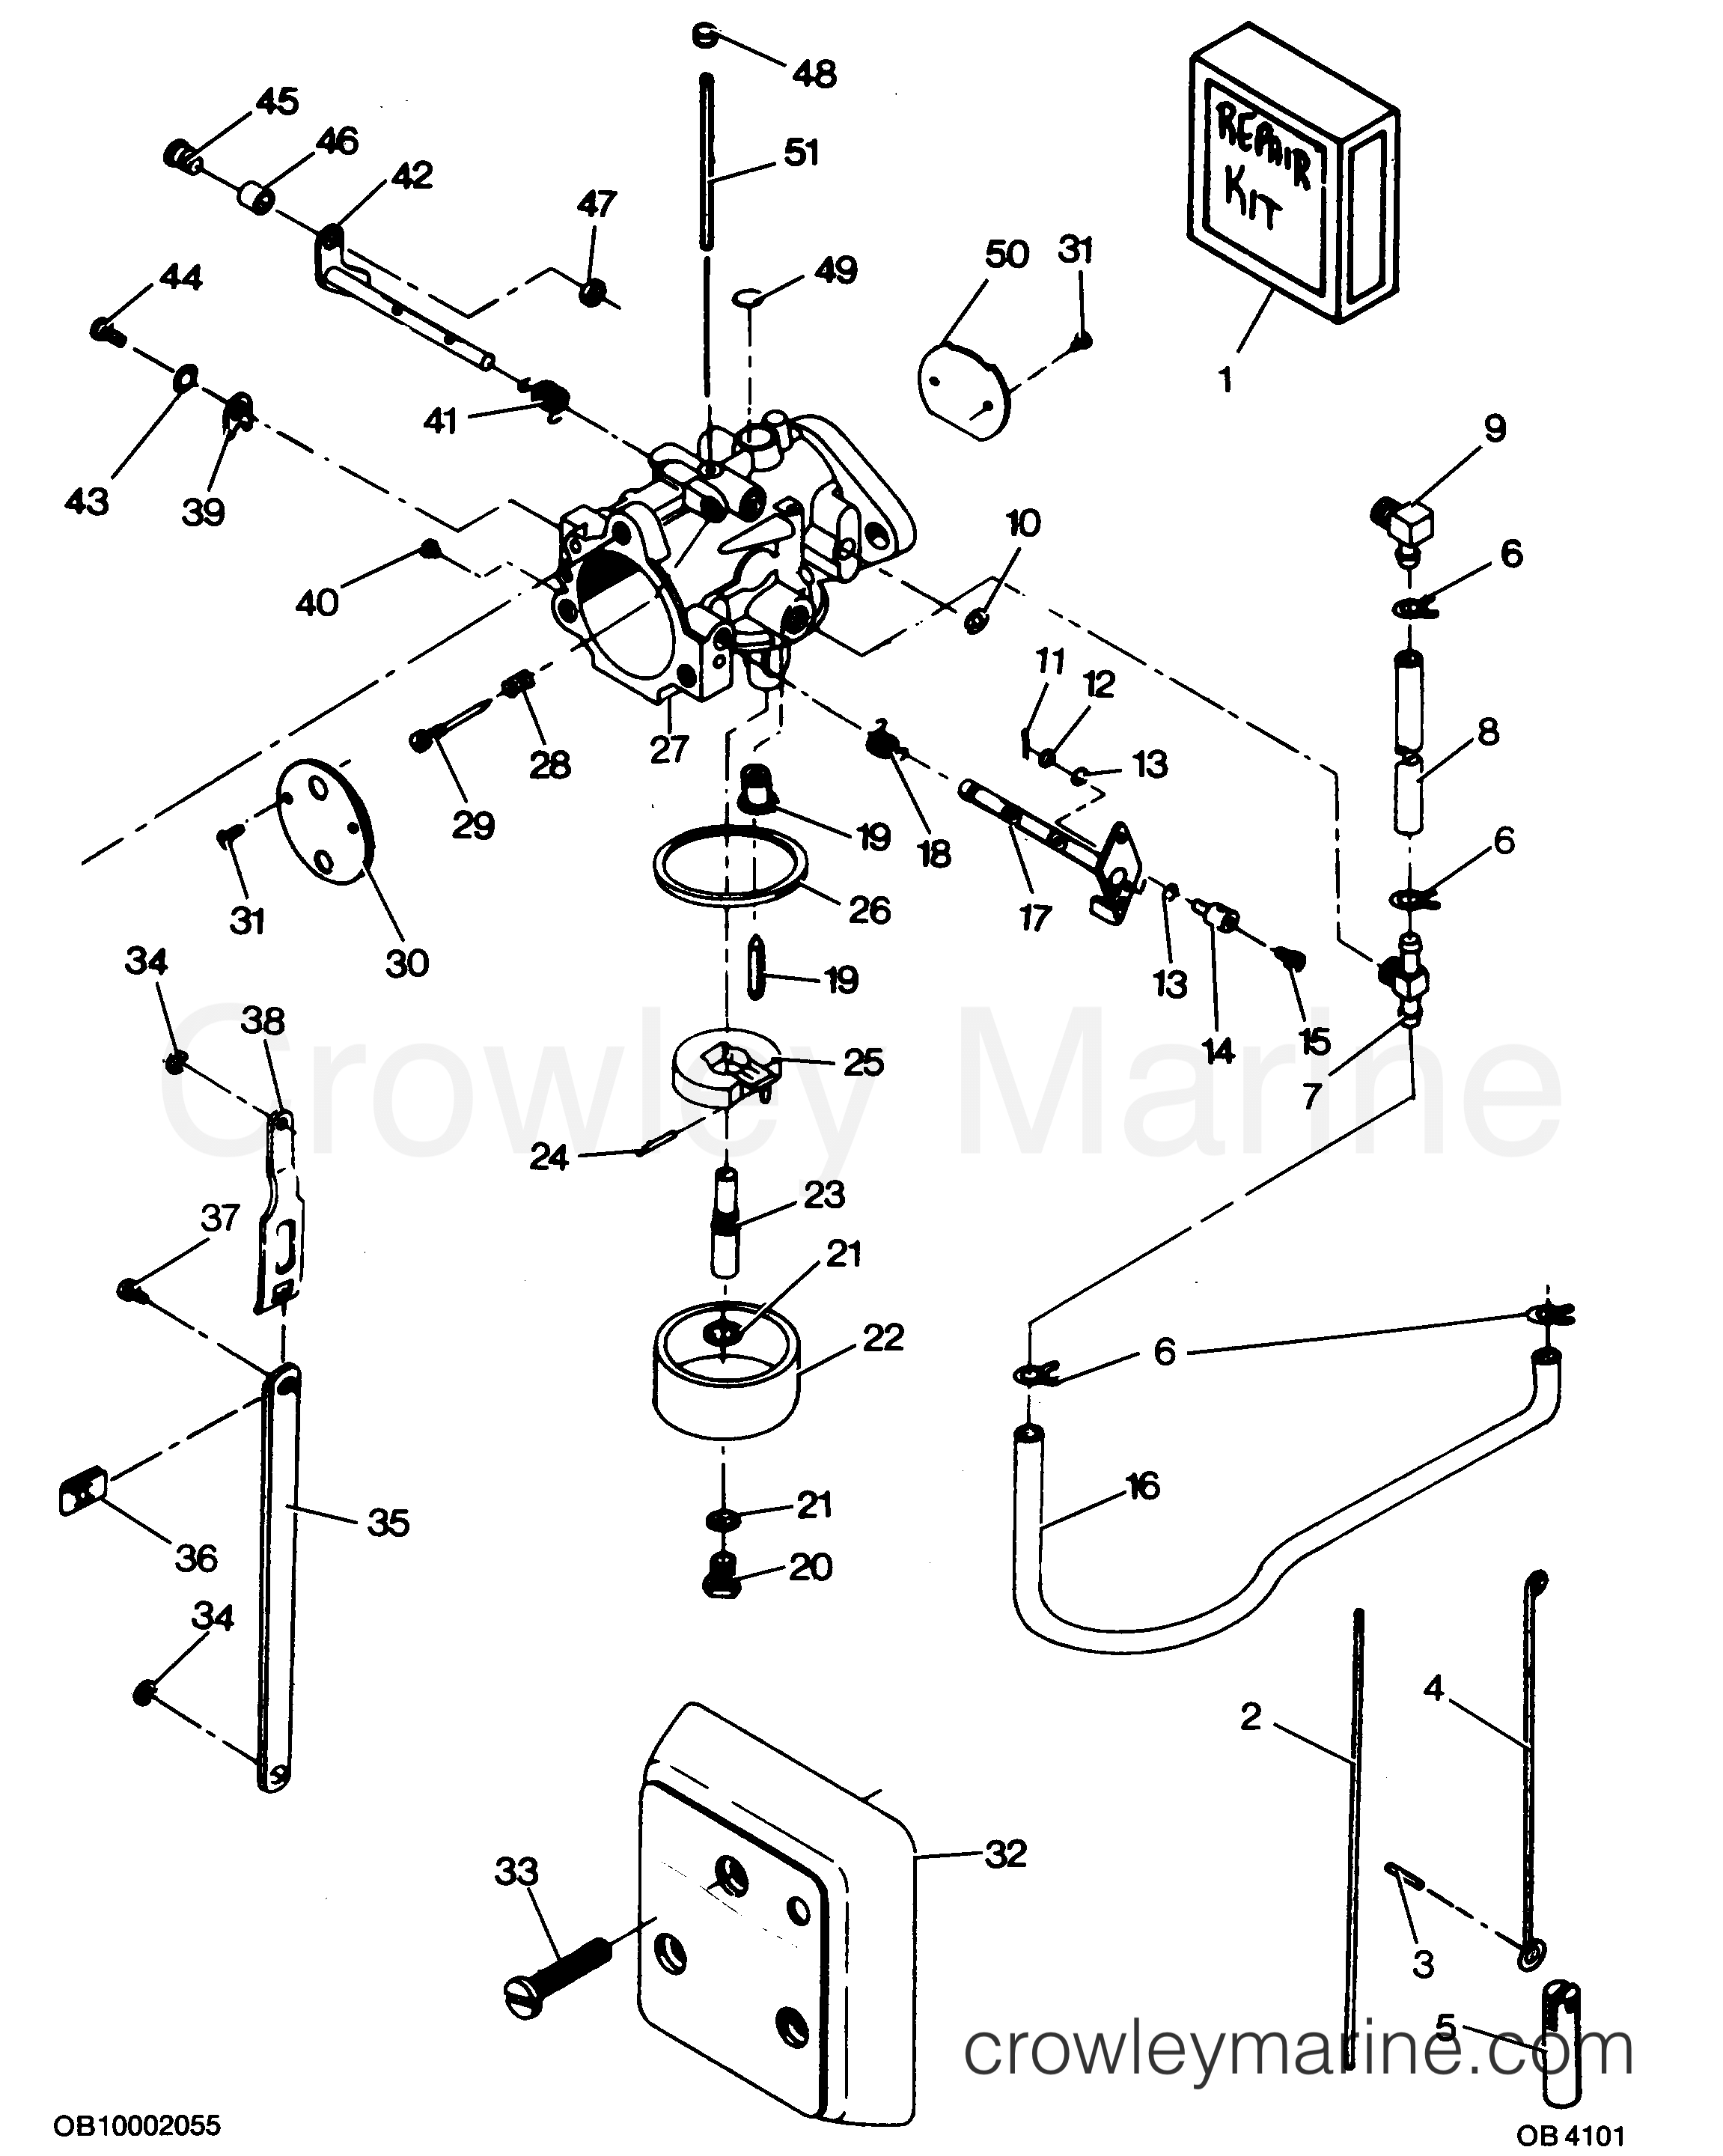 Force Outboard Parts Diagram Trusted Wiring 1988 Mercury 150 Xr2 Diagrams 125 Product U2022 120 List